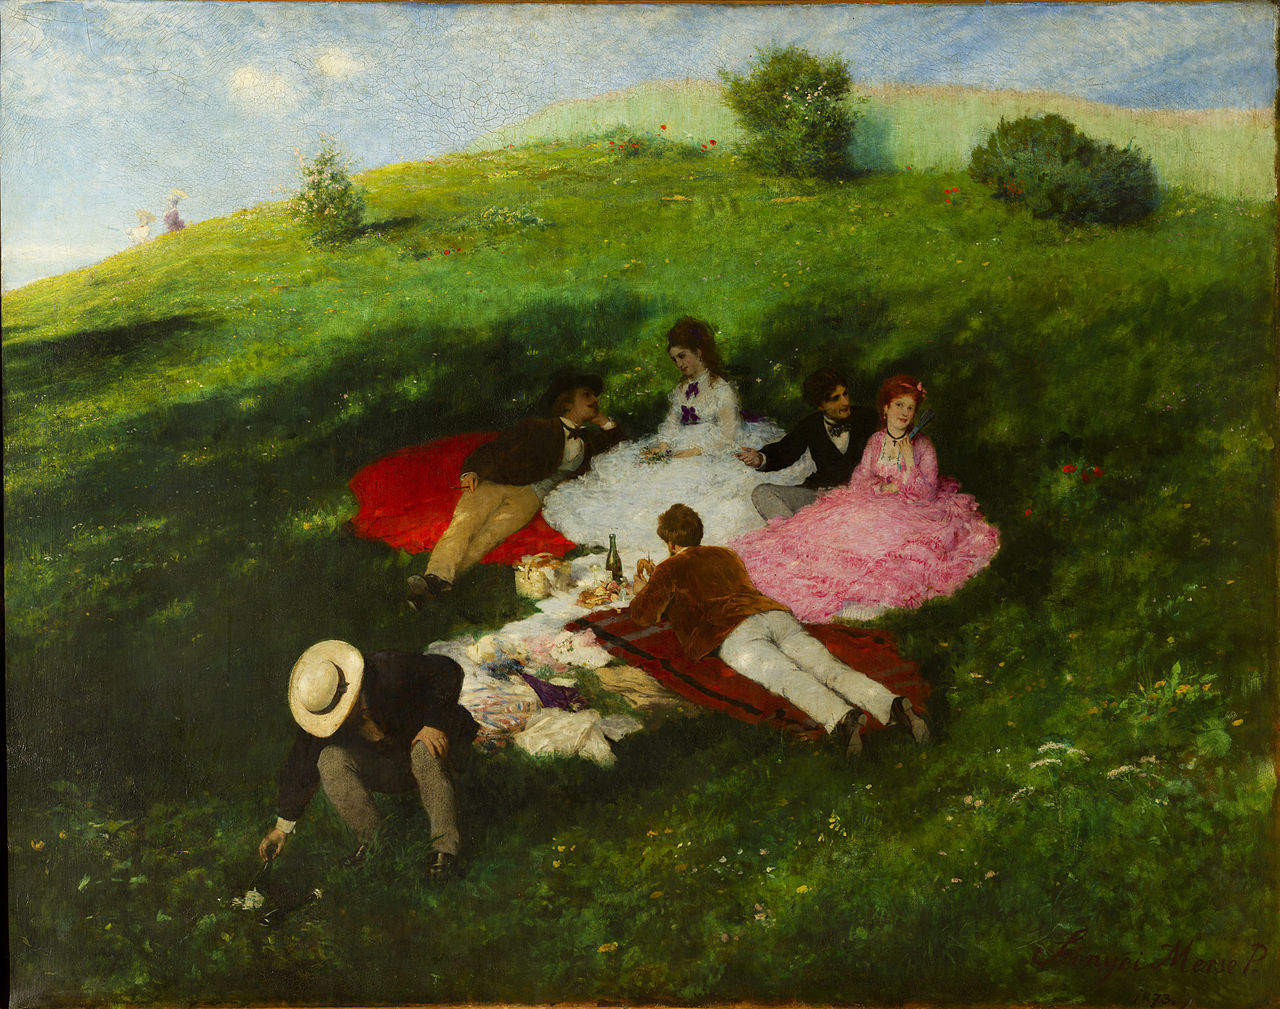 1280px-Szinyei_Merse,_Pál_-_Picnic_in_May_-_Google_Art_Project